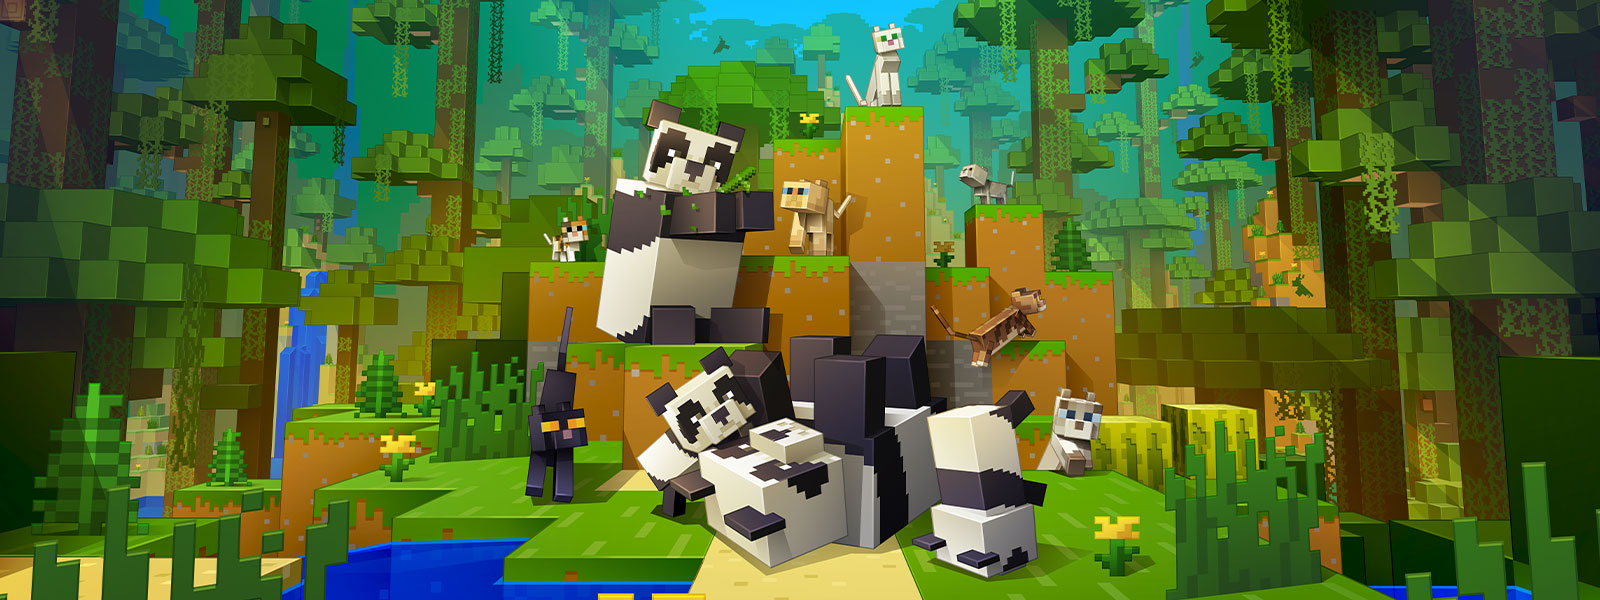 Image of Mincraft cats and pandas playing together